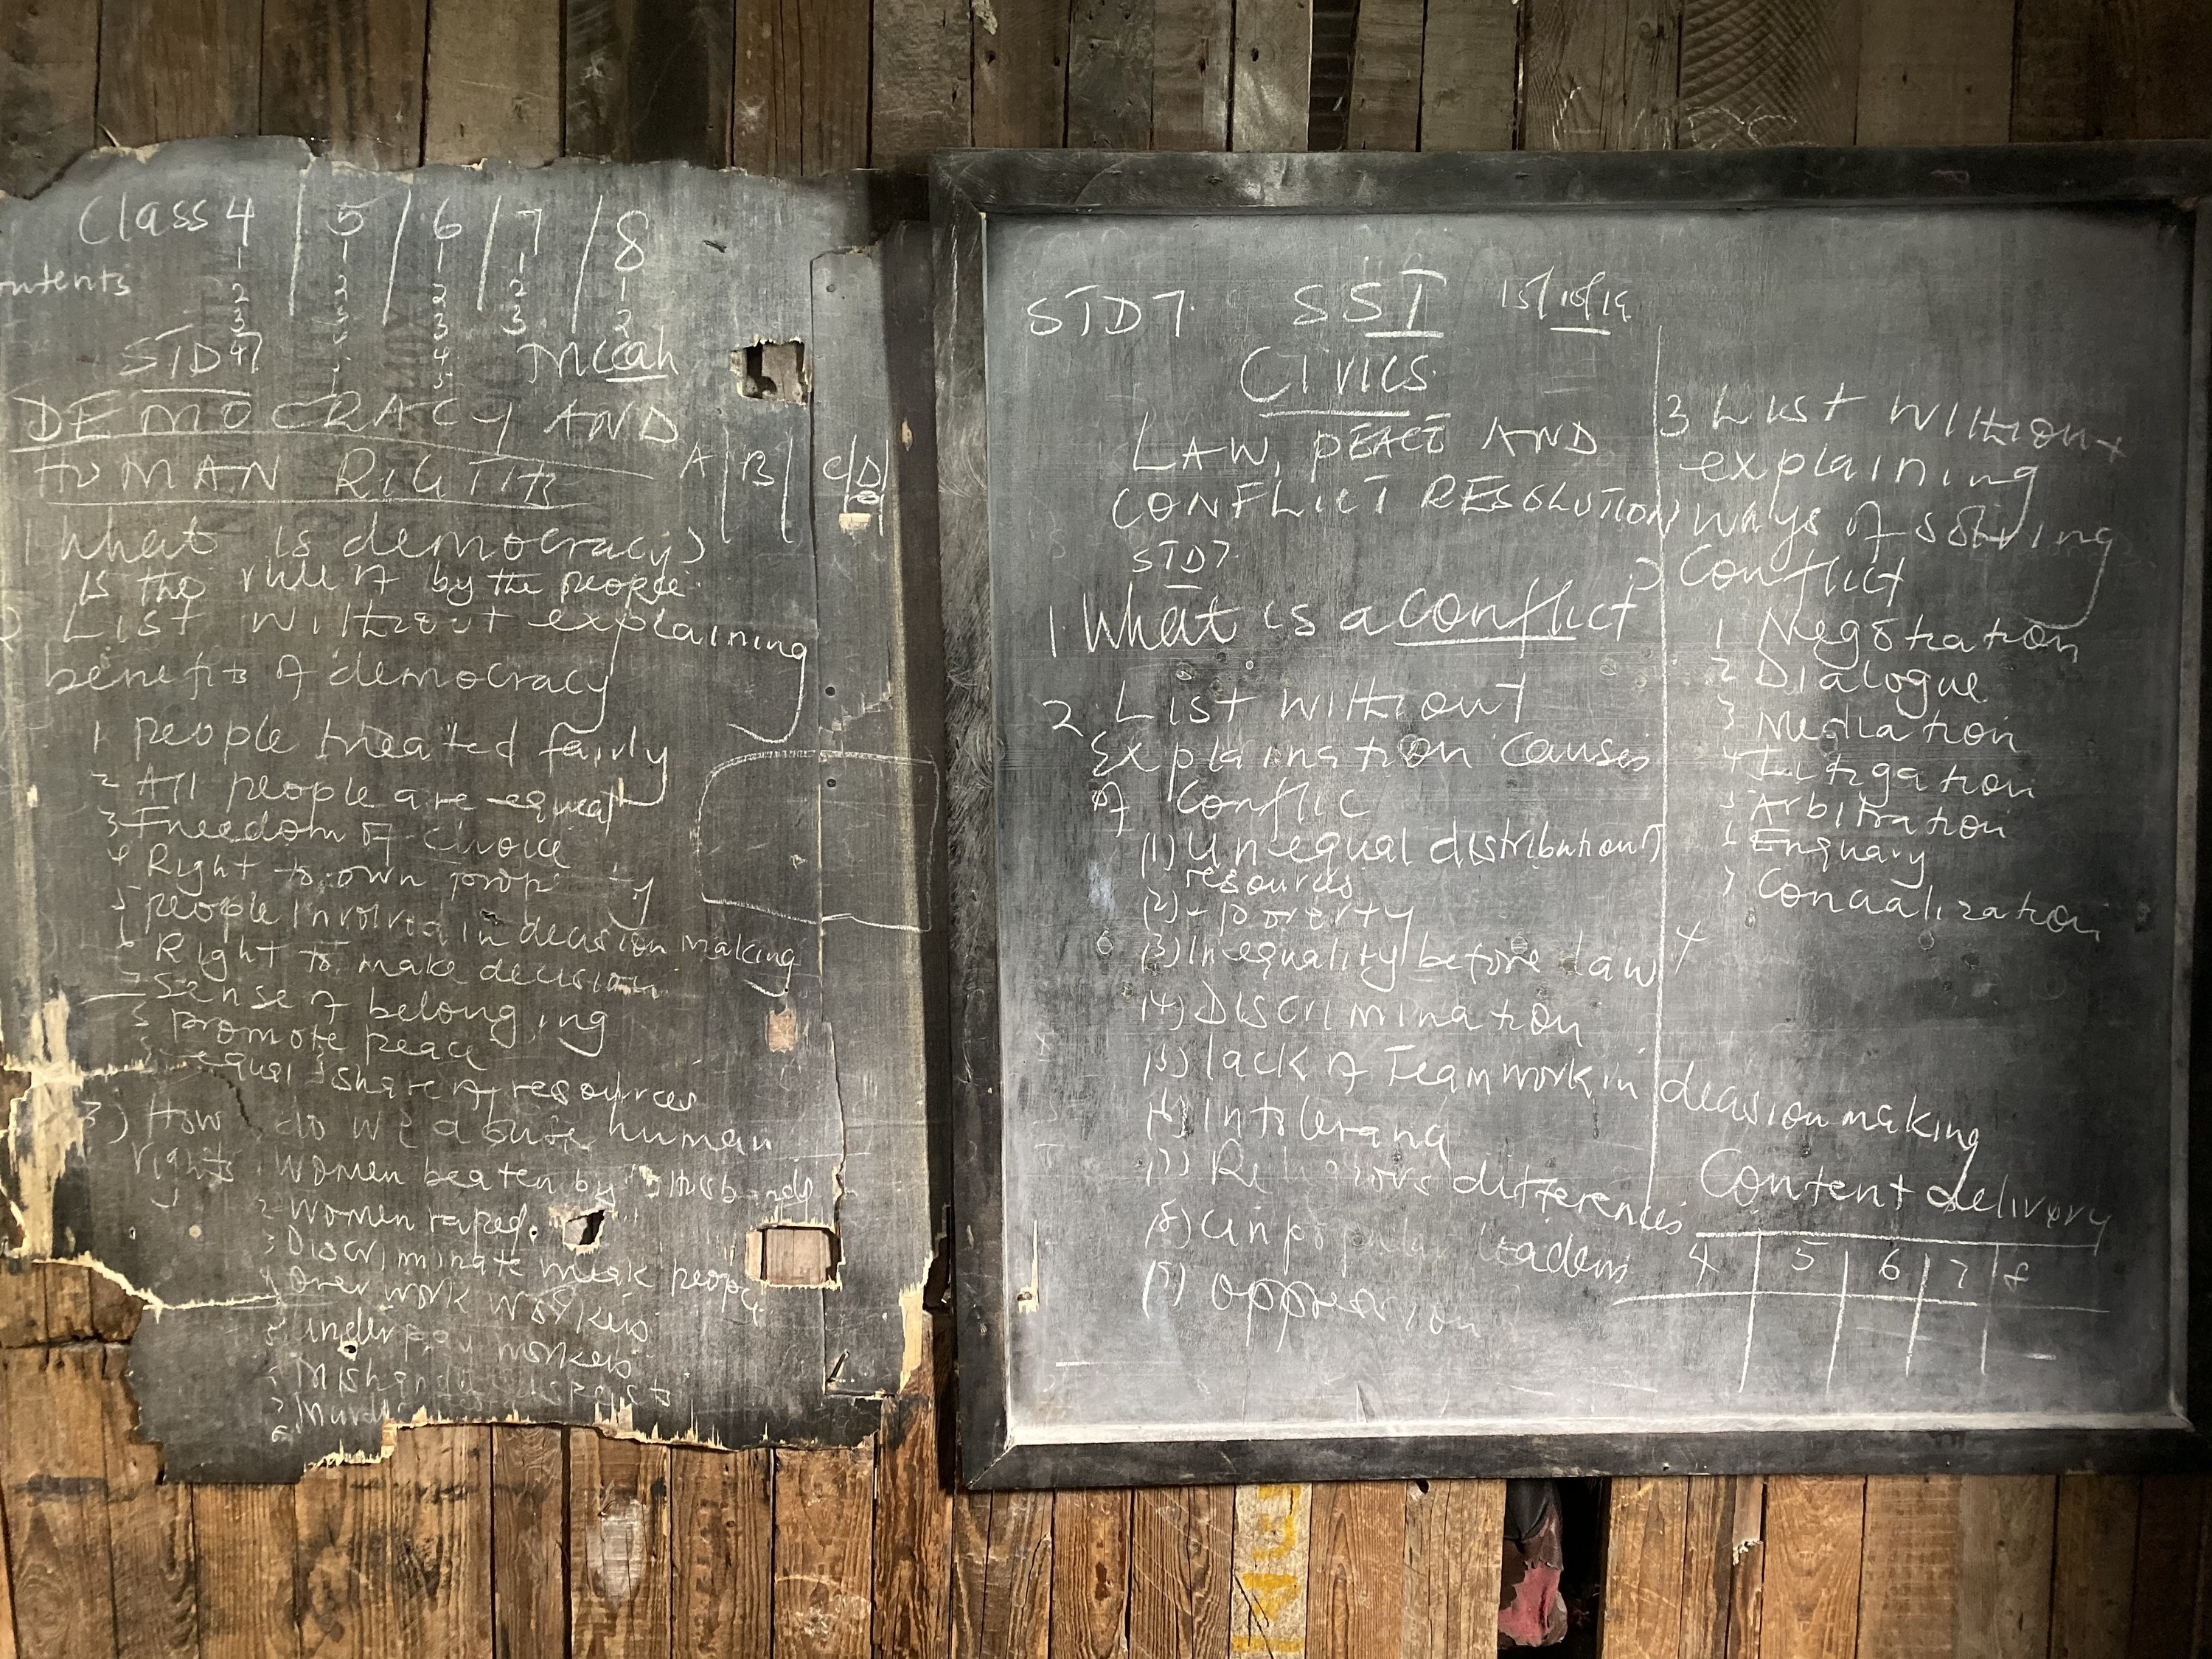 Shoddy blackboards with scrawled lessons about civics and human rights.